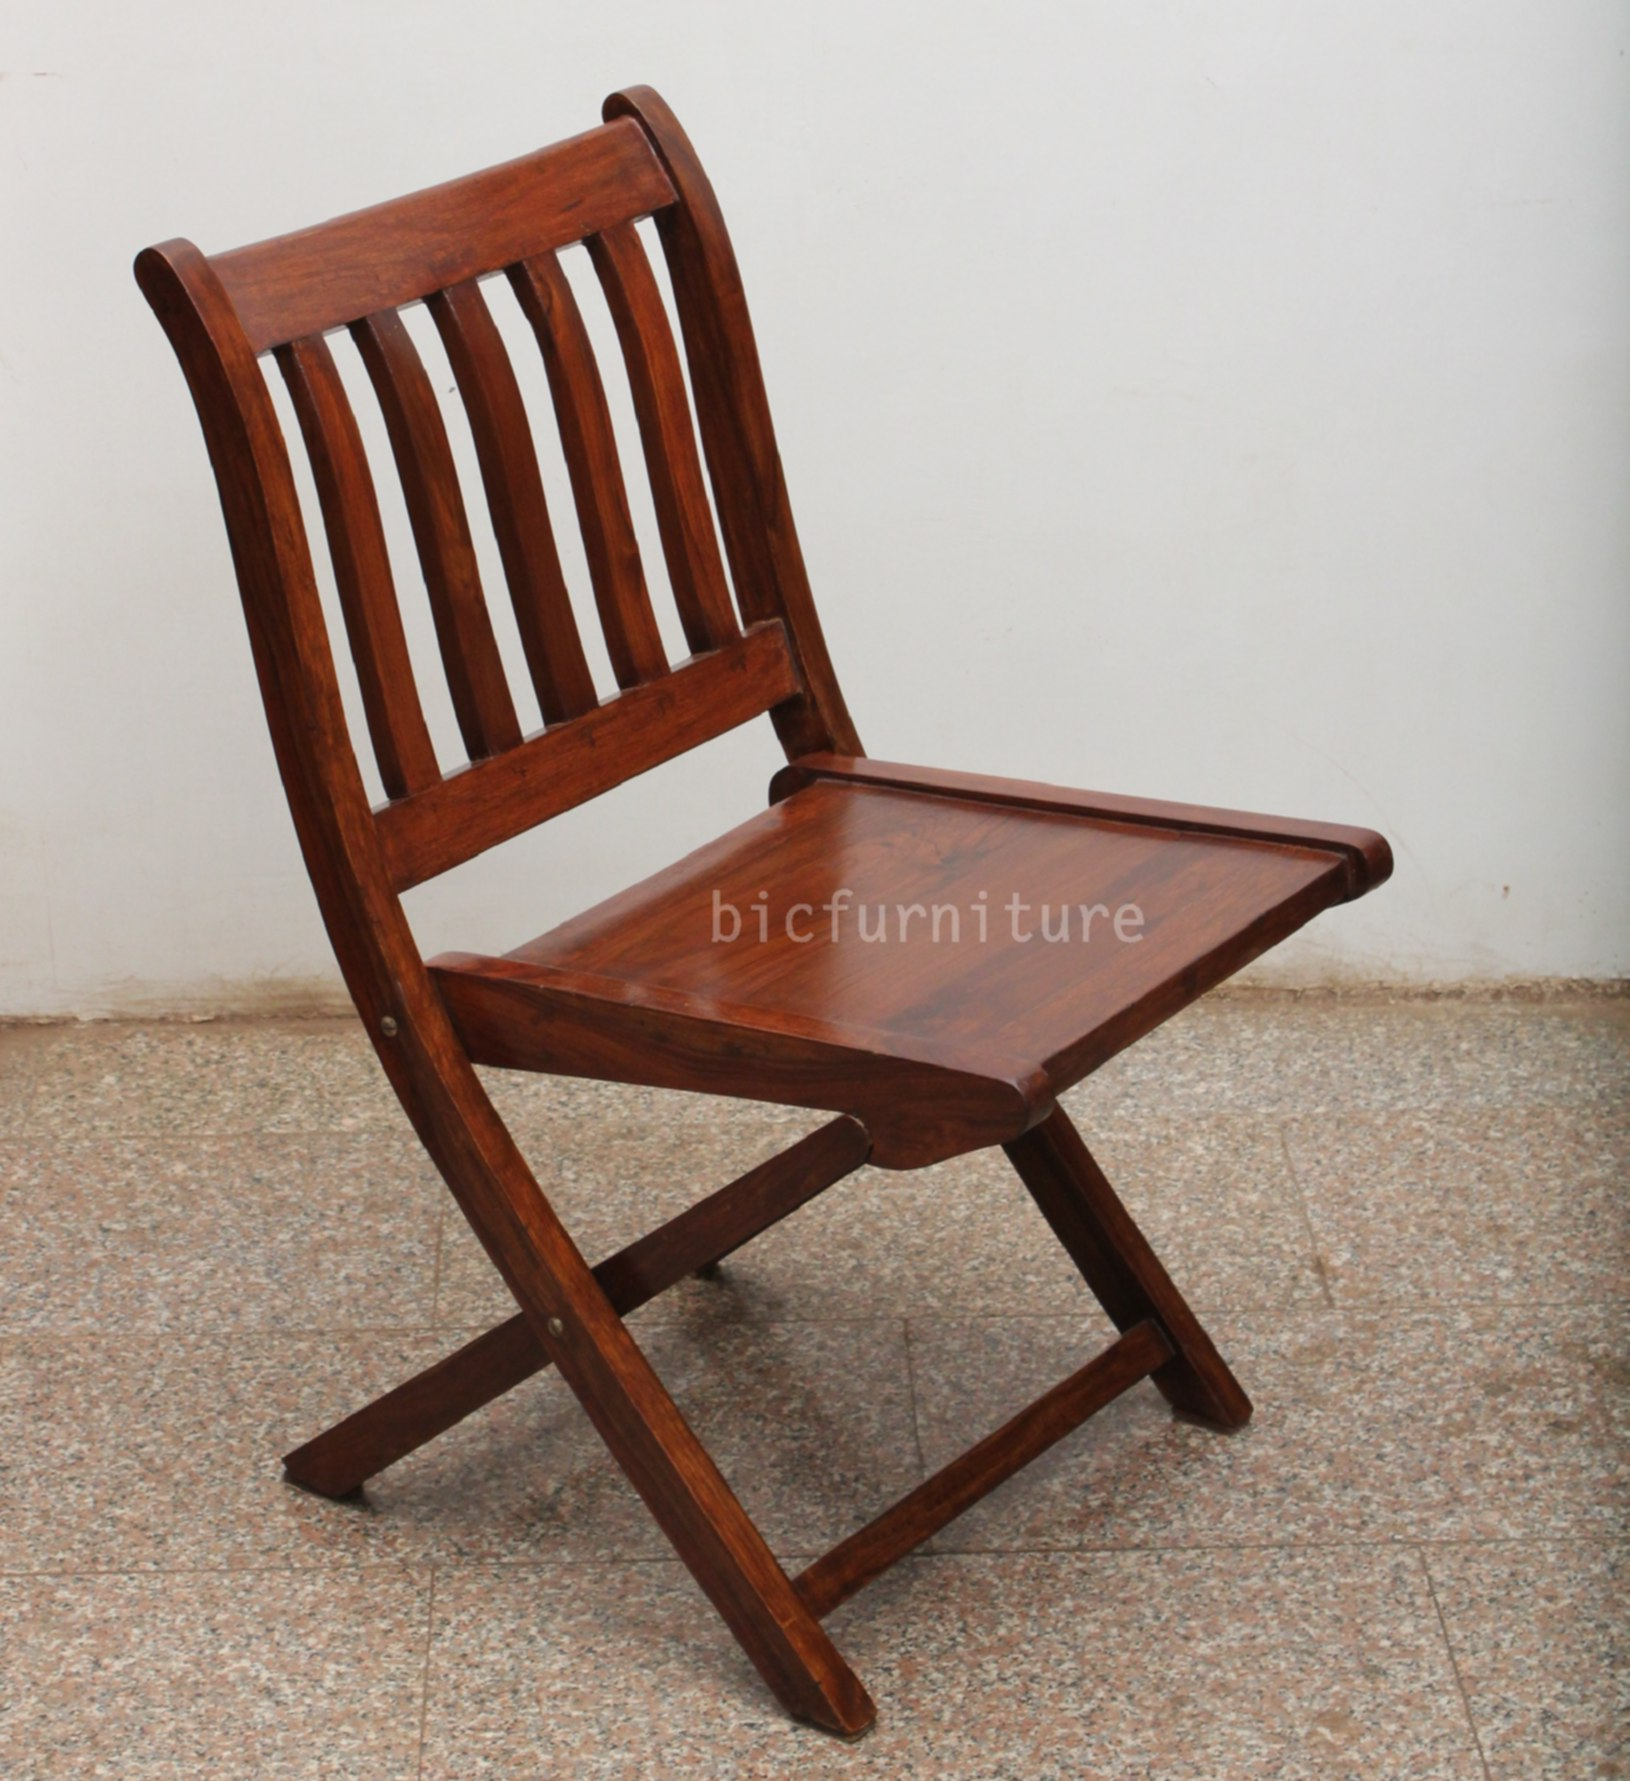 Groovy Ch 42 Wooden Folding Chair Inzonedesignstudio Interior Chair Design Inzonedesignstudiocom